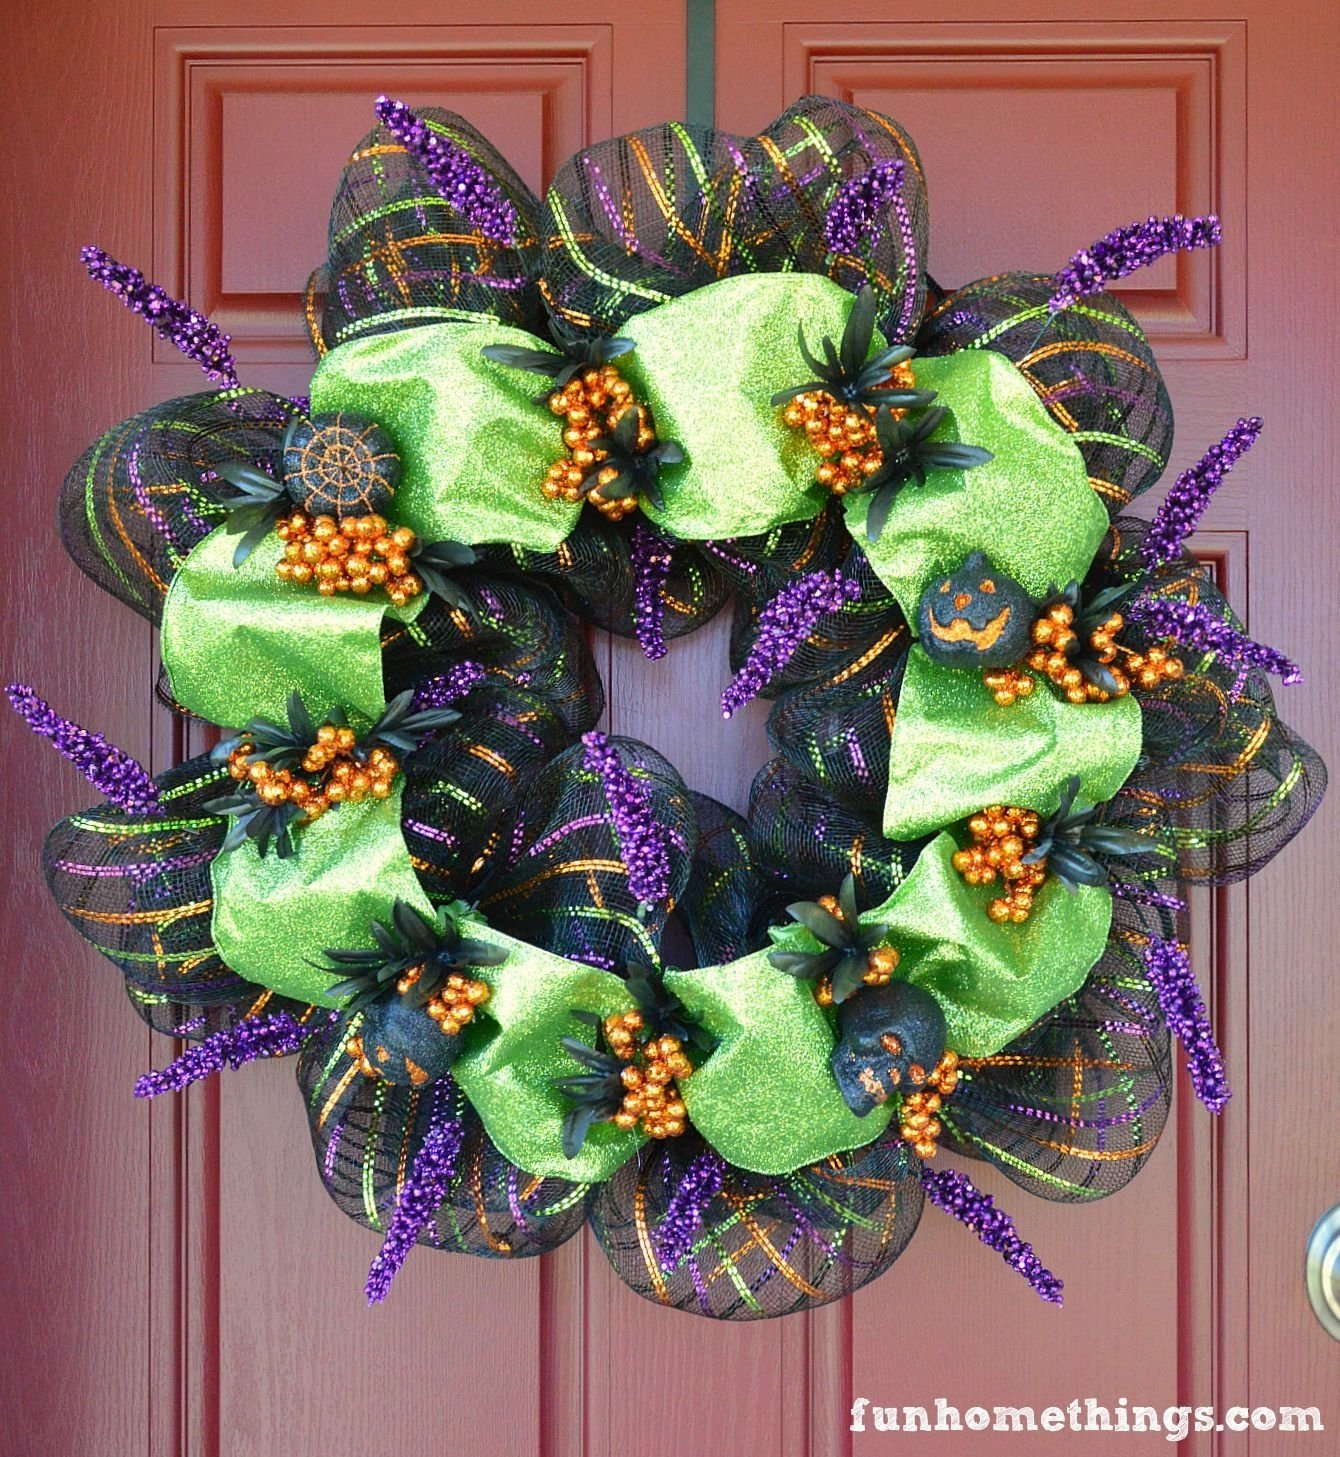 10 Most Recommended Deco Mesh Halloween Wreath Ideas deco mesh halloween wreath fun home things 2021